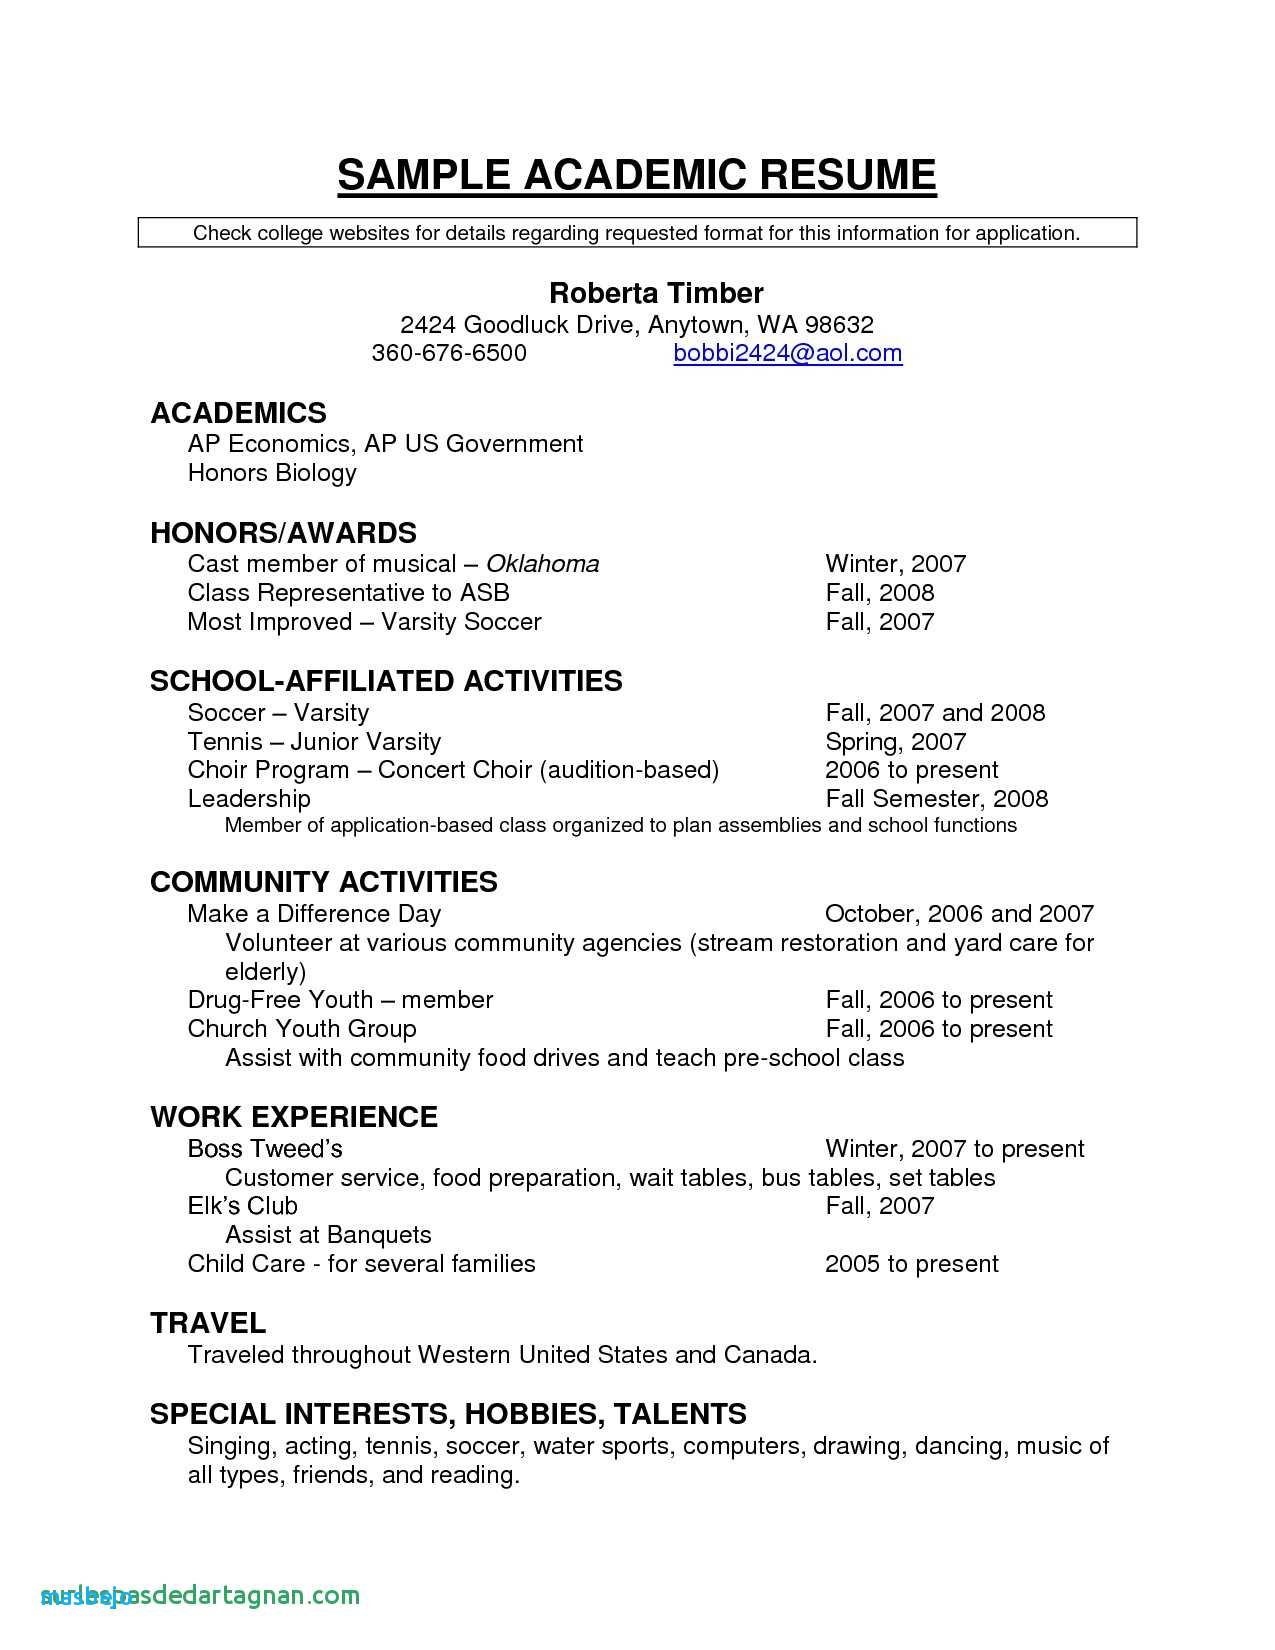 Audition Resume Template - Puter Resume Examples Unique Resume for Highschool Students